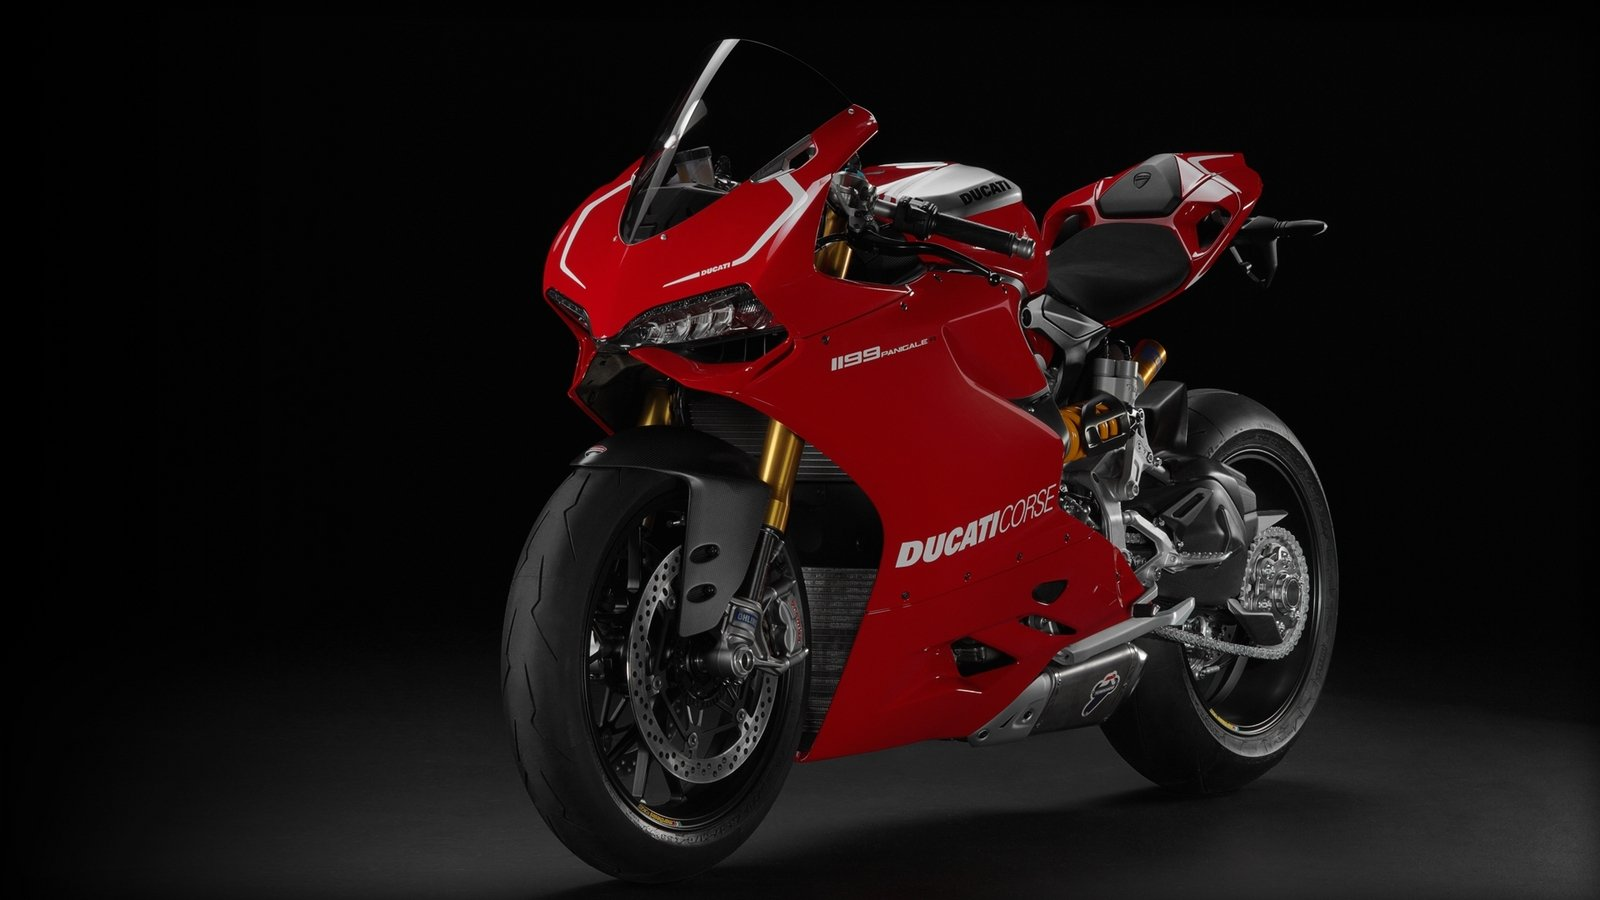 2013 Ducati Superbike 1199 Panigale R Pictures, Photos ...